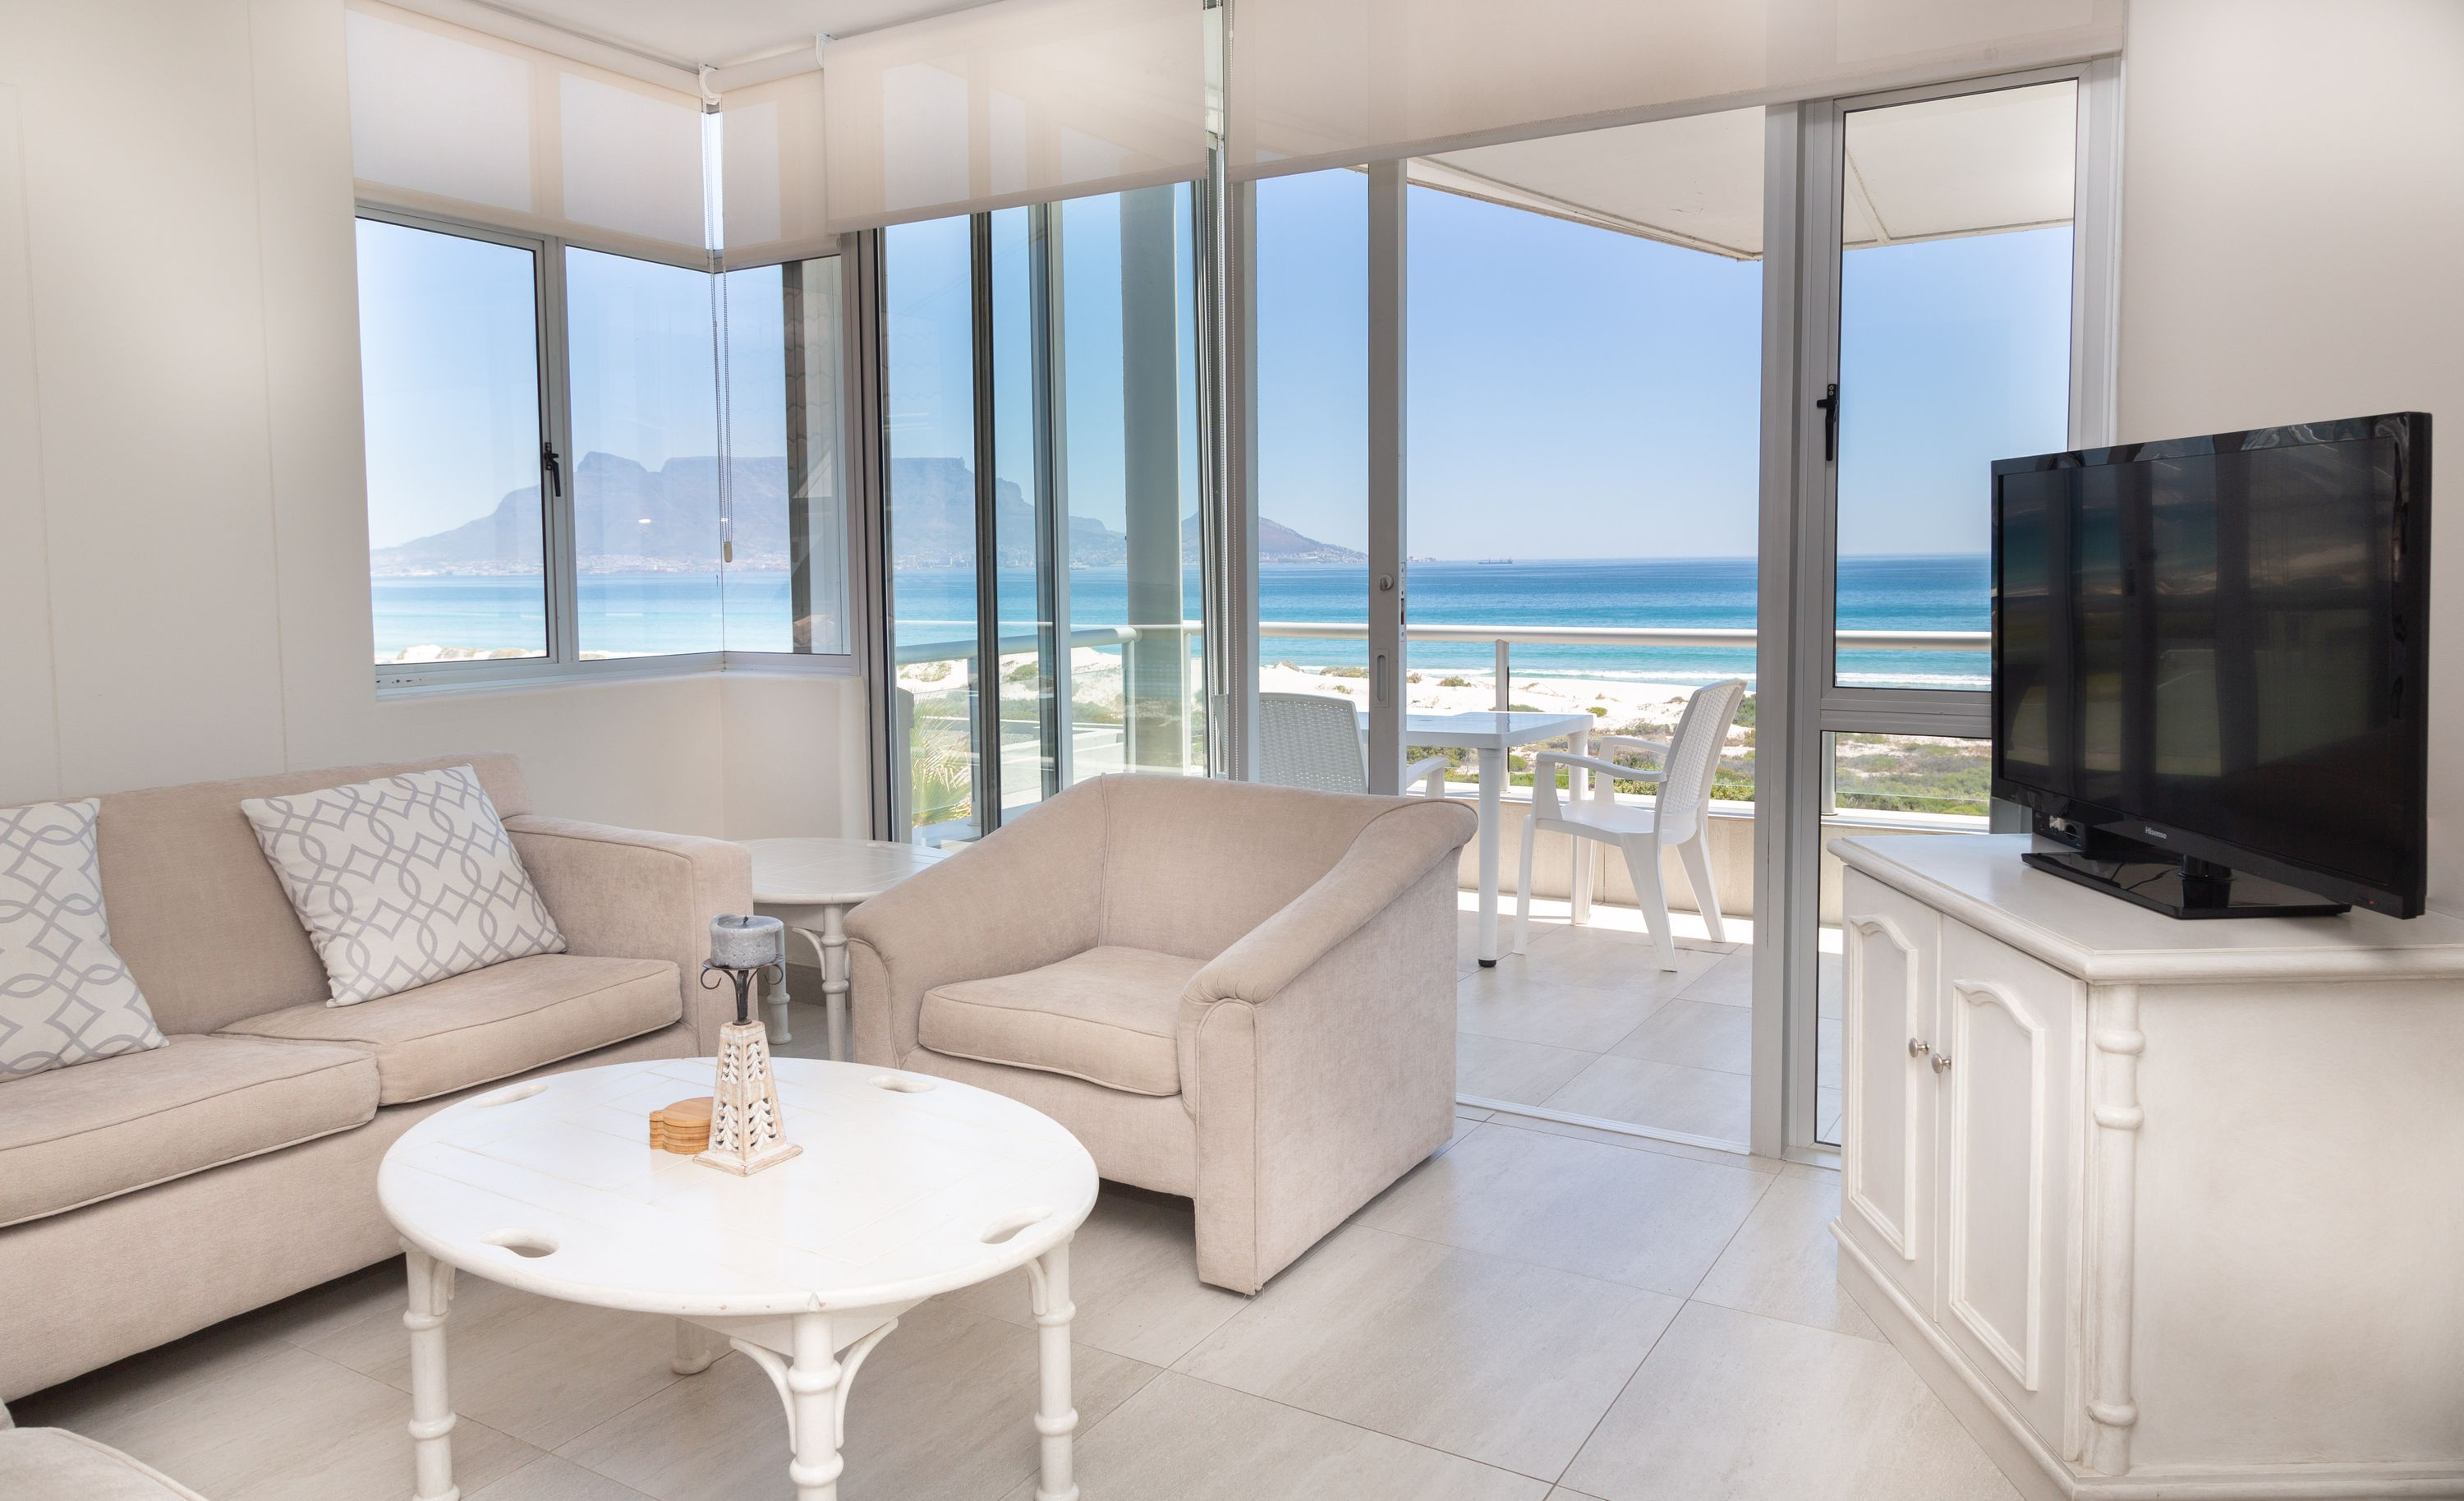 Dolphin 2 bedroom apartment -direct access to the beach